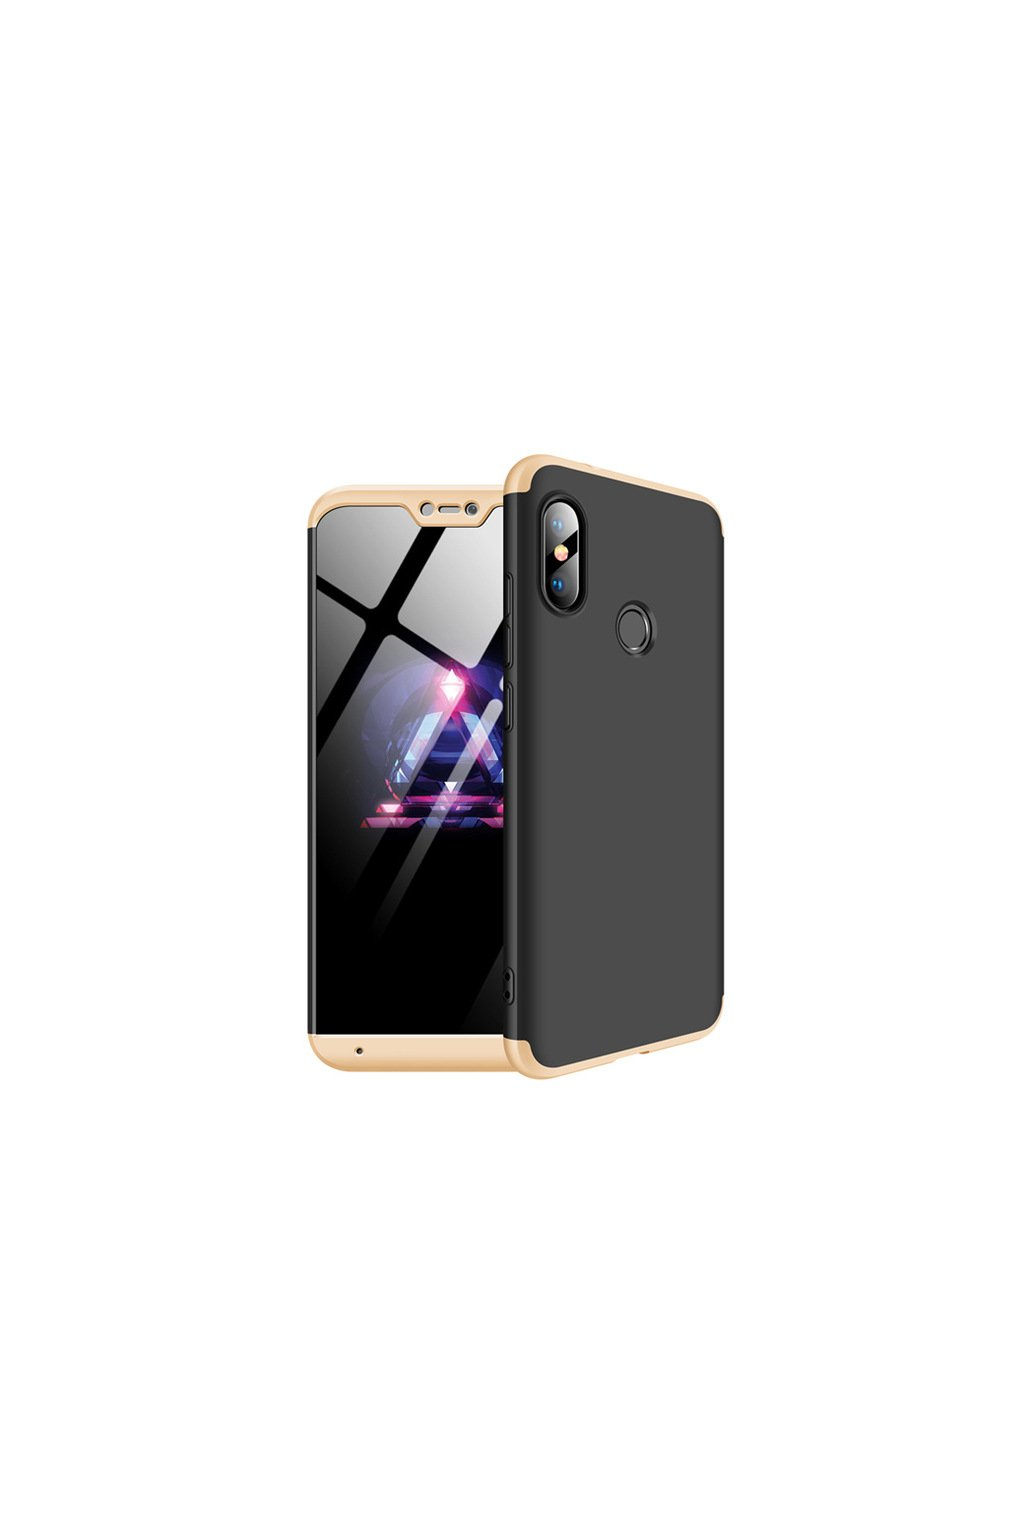 Voppton 360 Full Protection Case for Xiaomi Mi A2 lite Case Luxury Hard PC 3 In.jpg 640x640